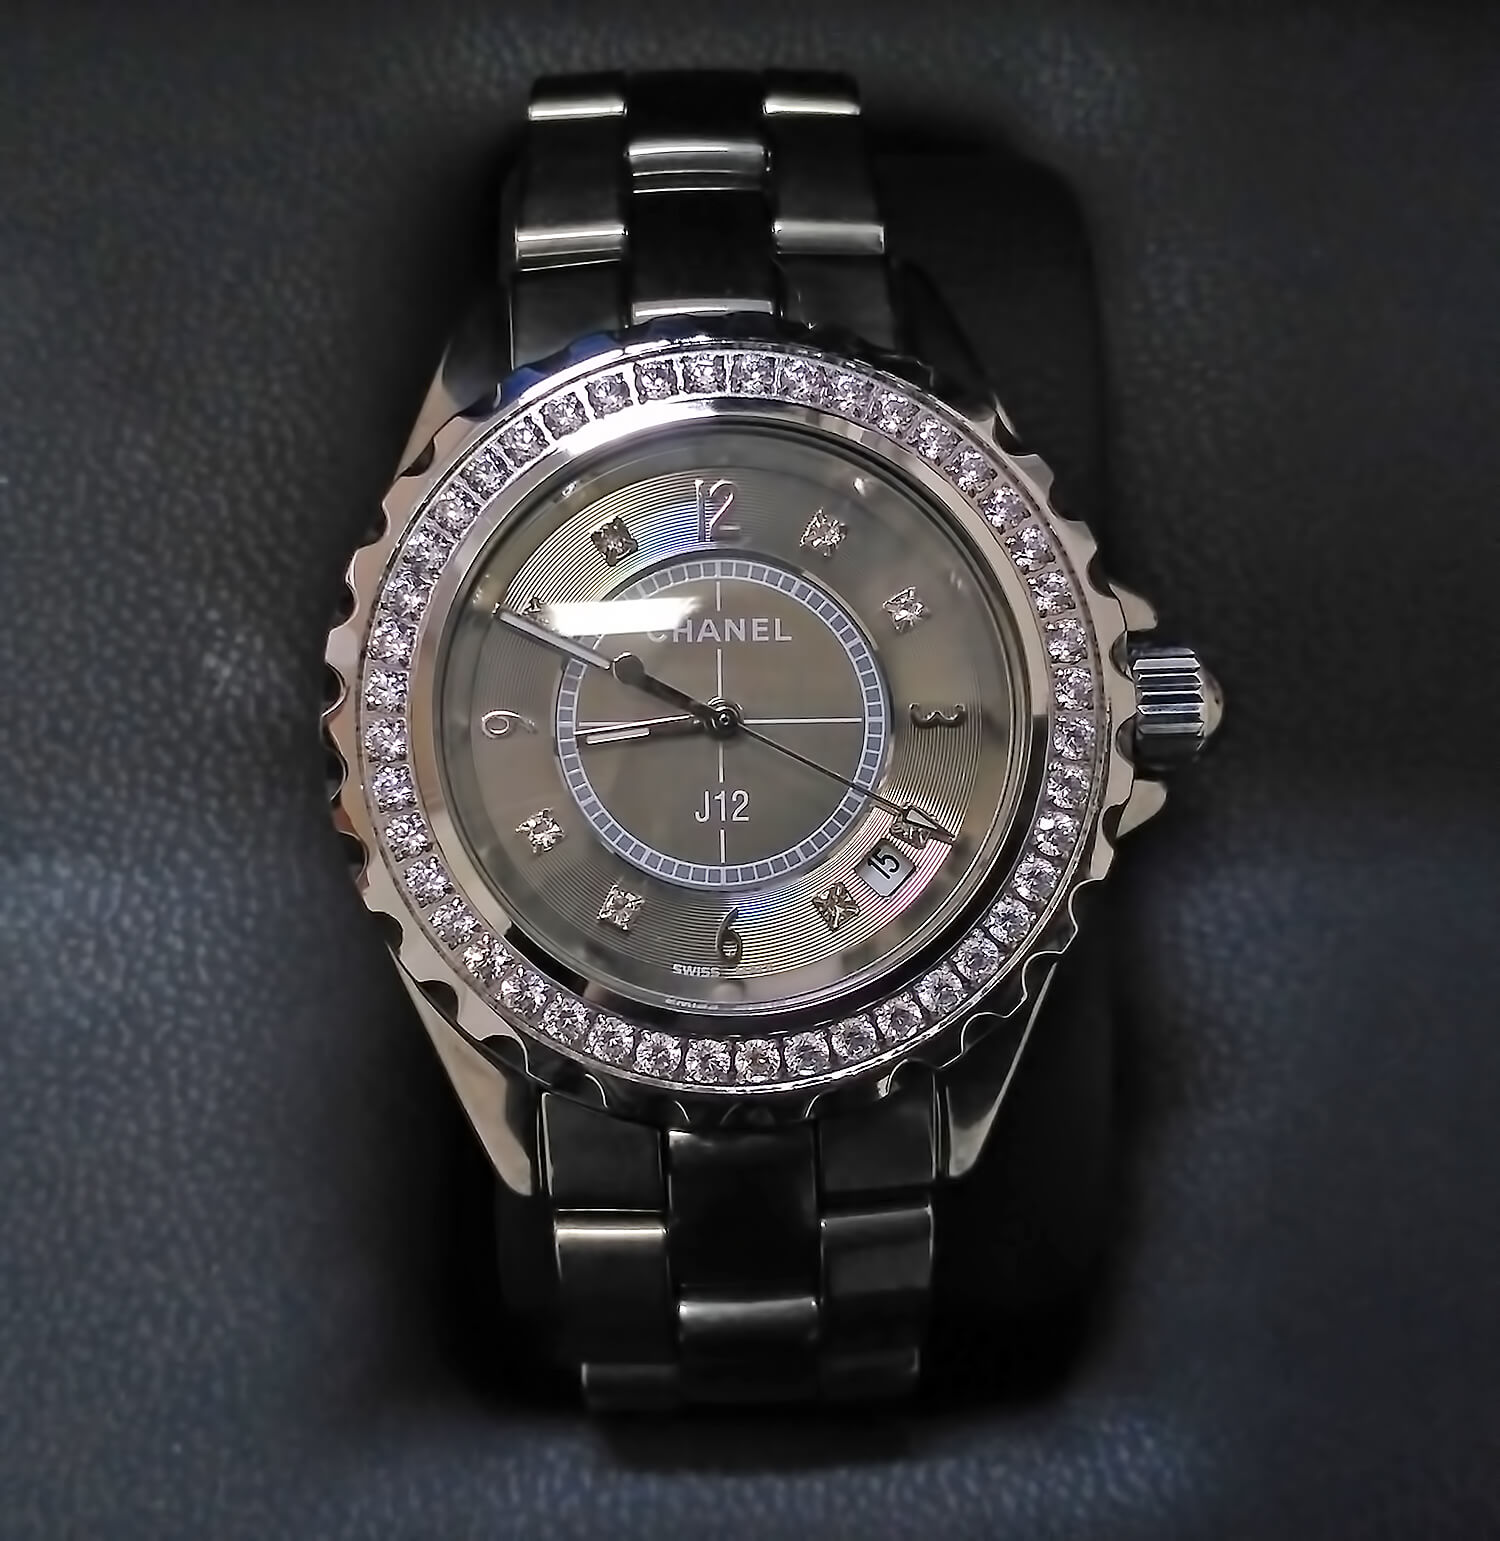 Реплика женских часов Chanel J12 Chromatic Diamond